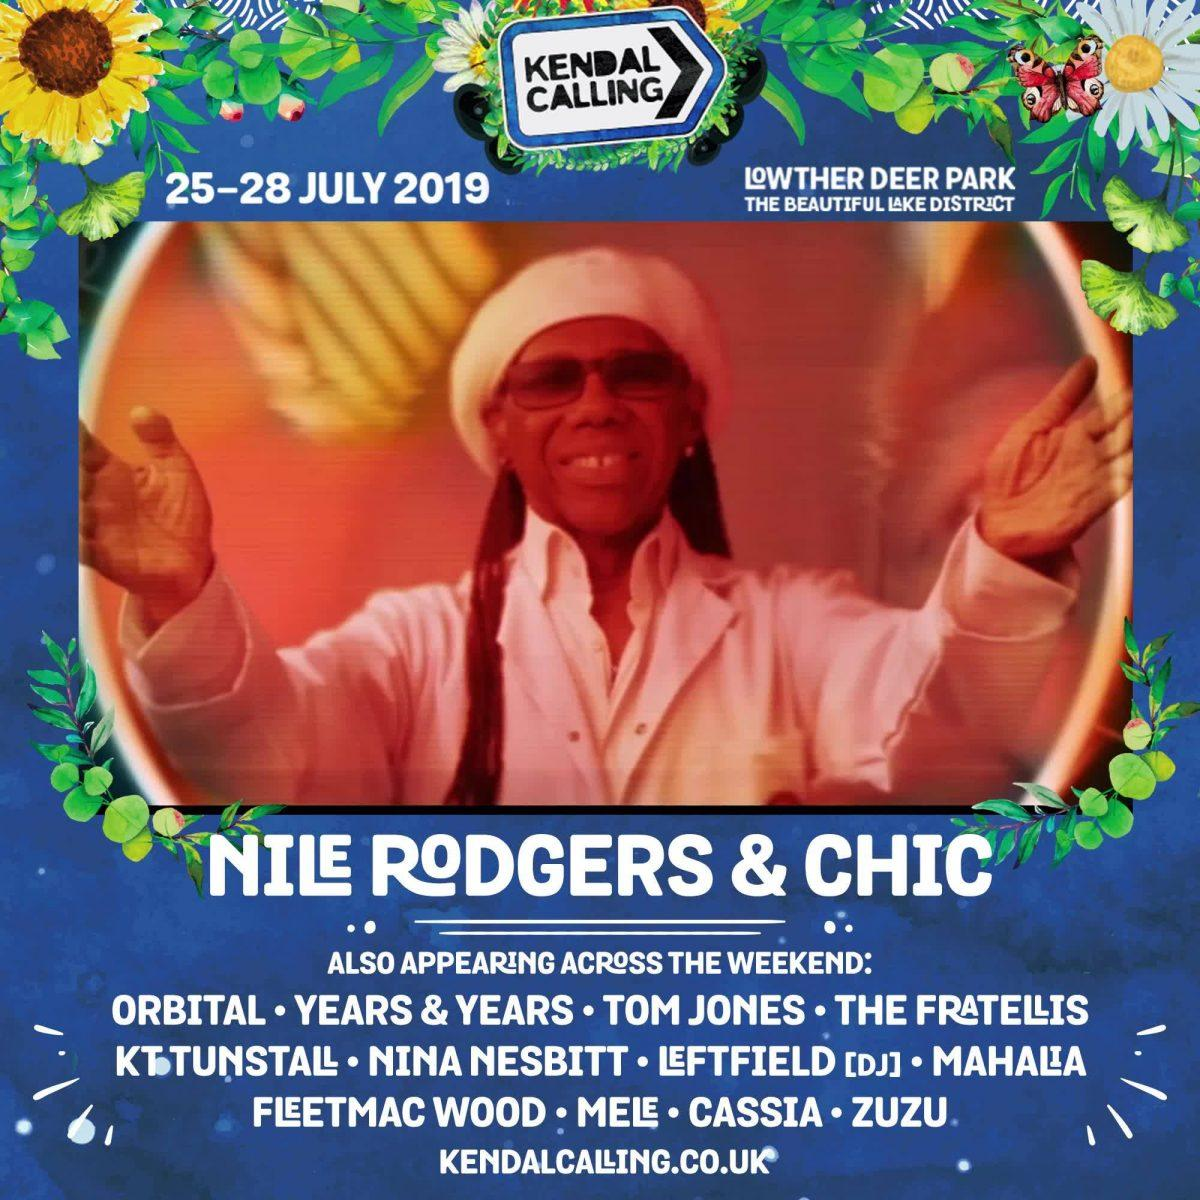 KC19: Chic & Nile Rodgers